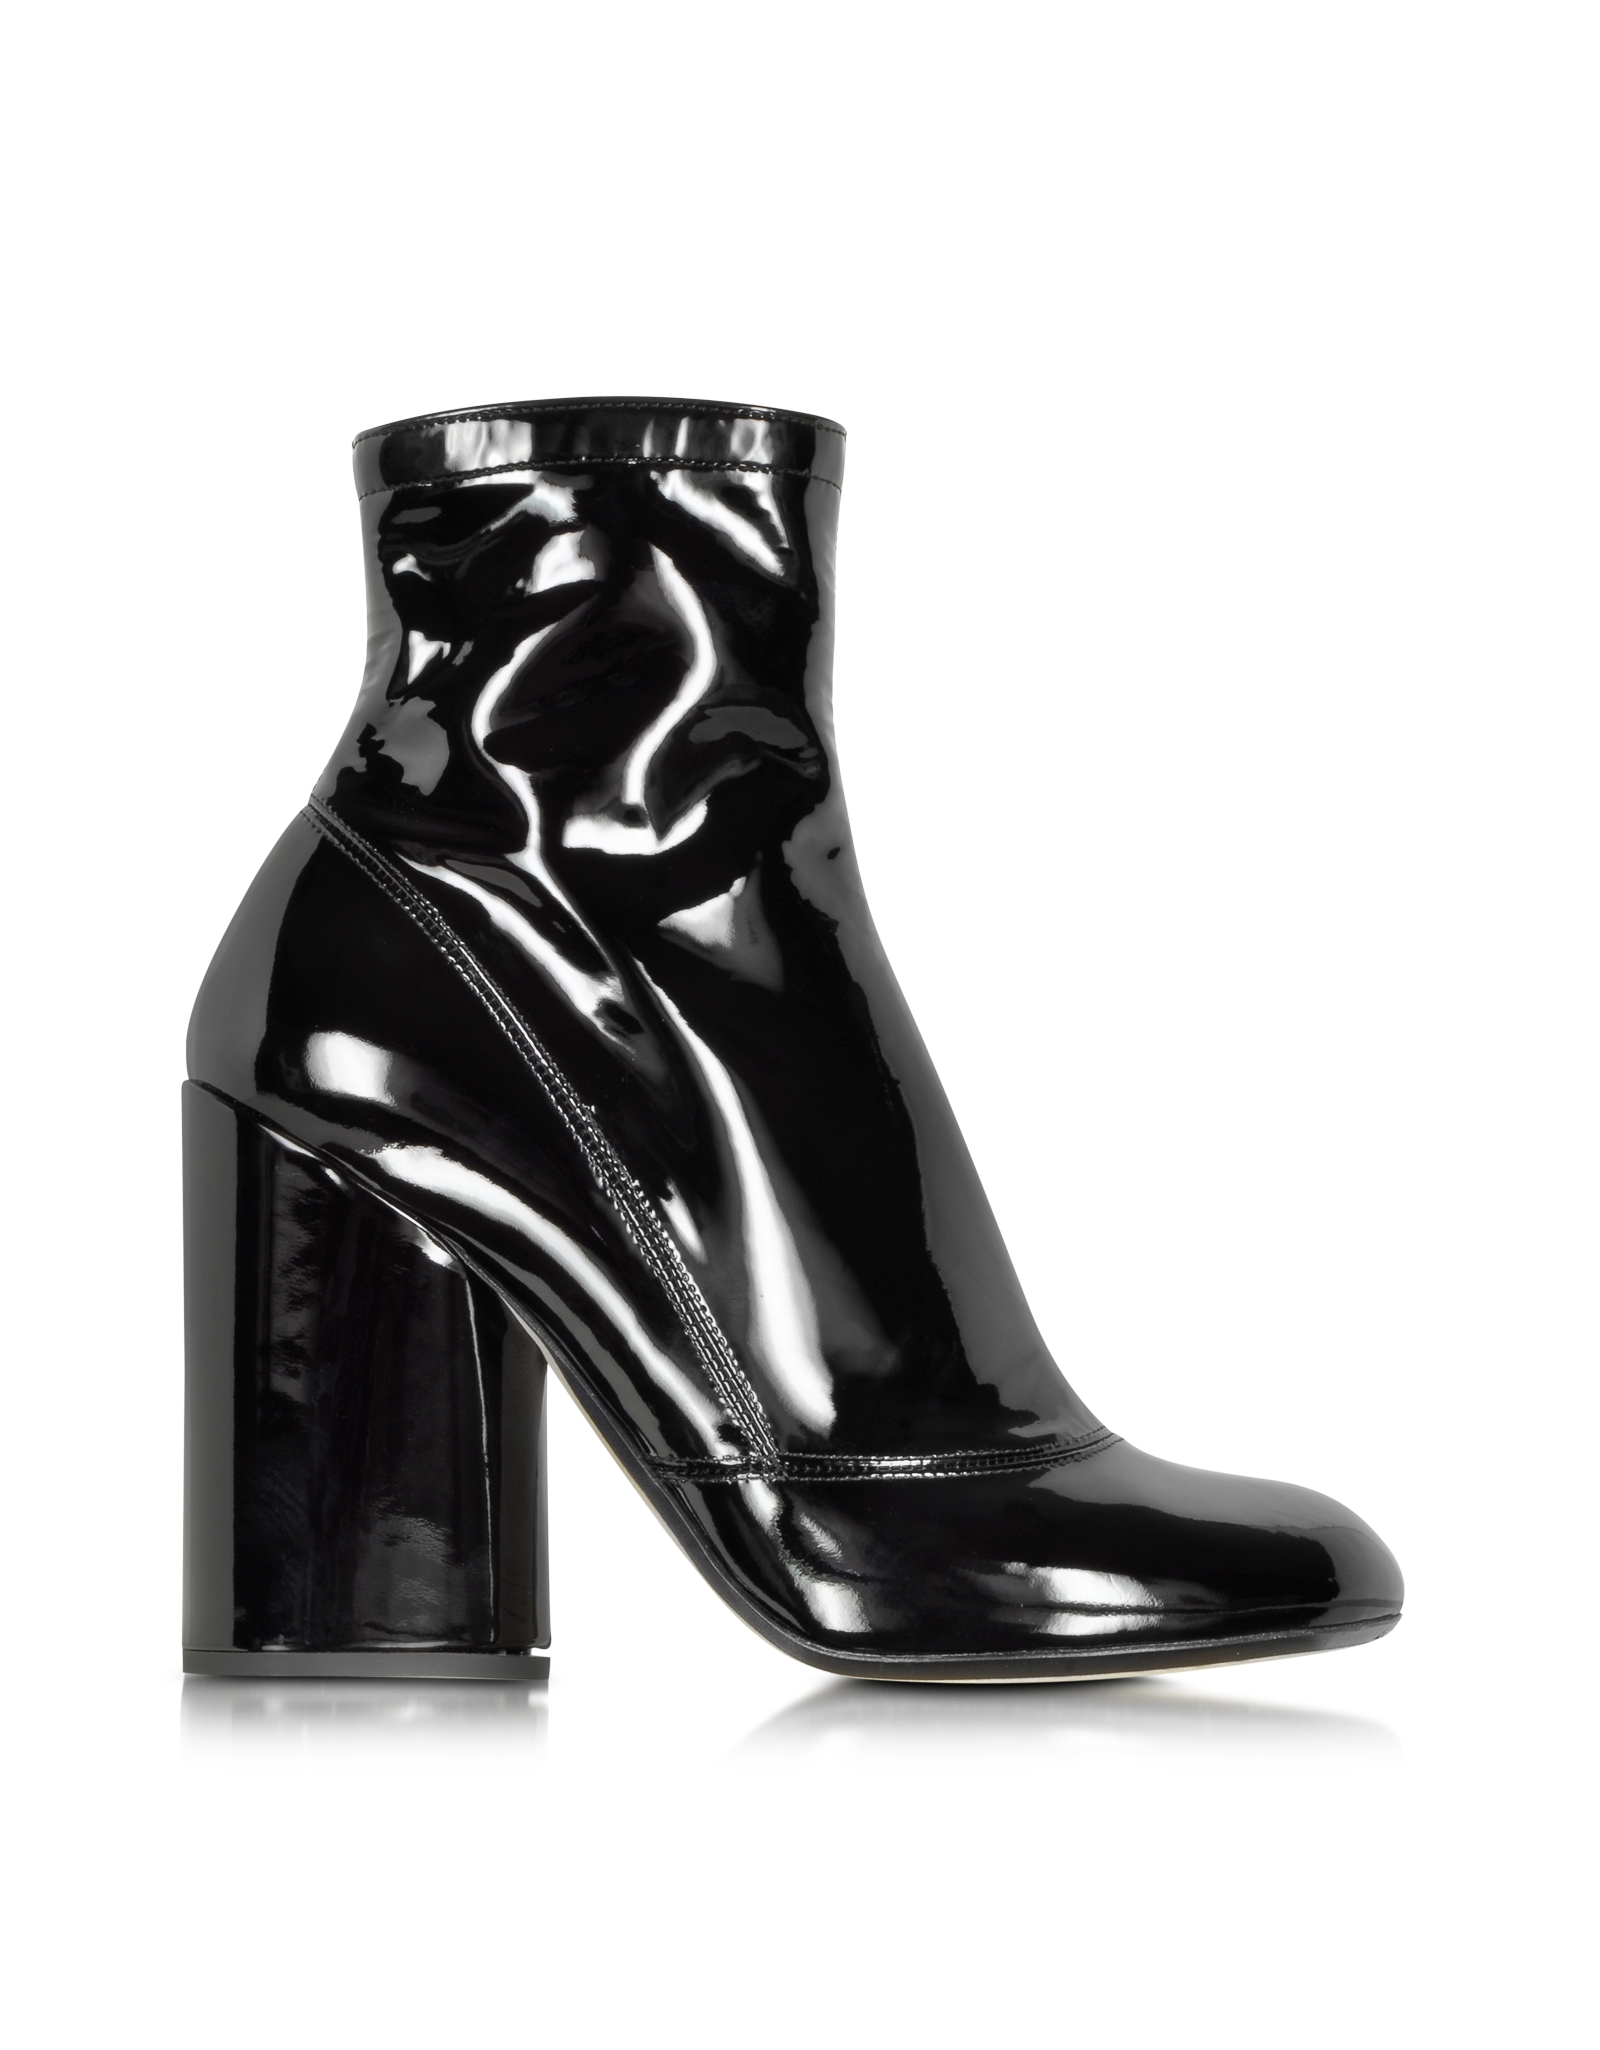 Marc jacobs Black Patent Leather Boot in Black | Lyst